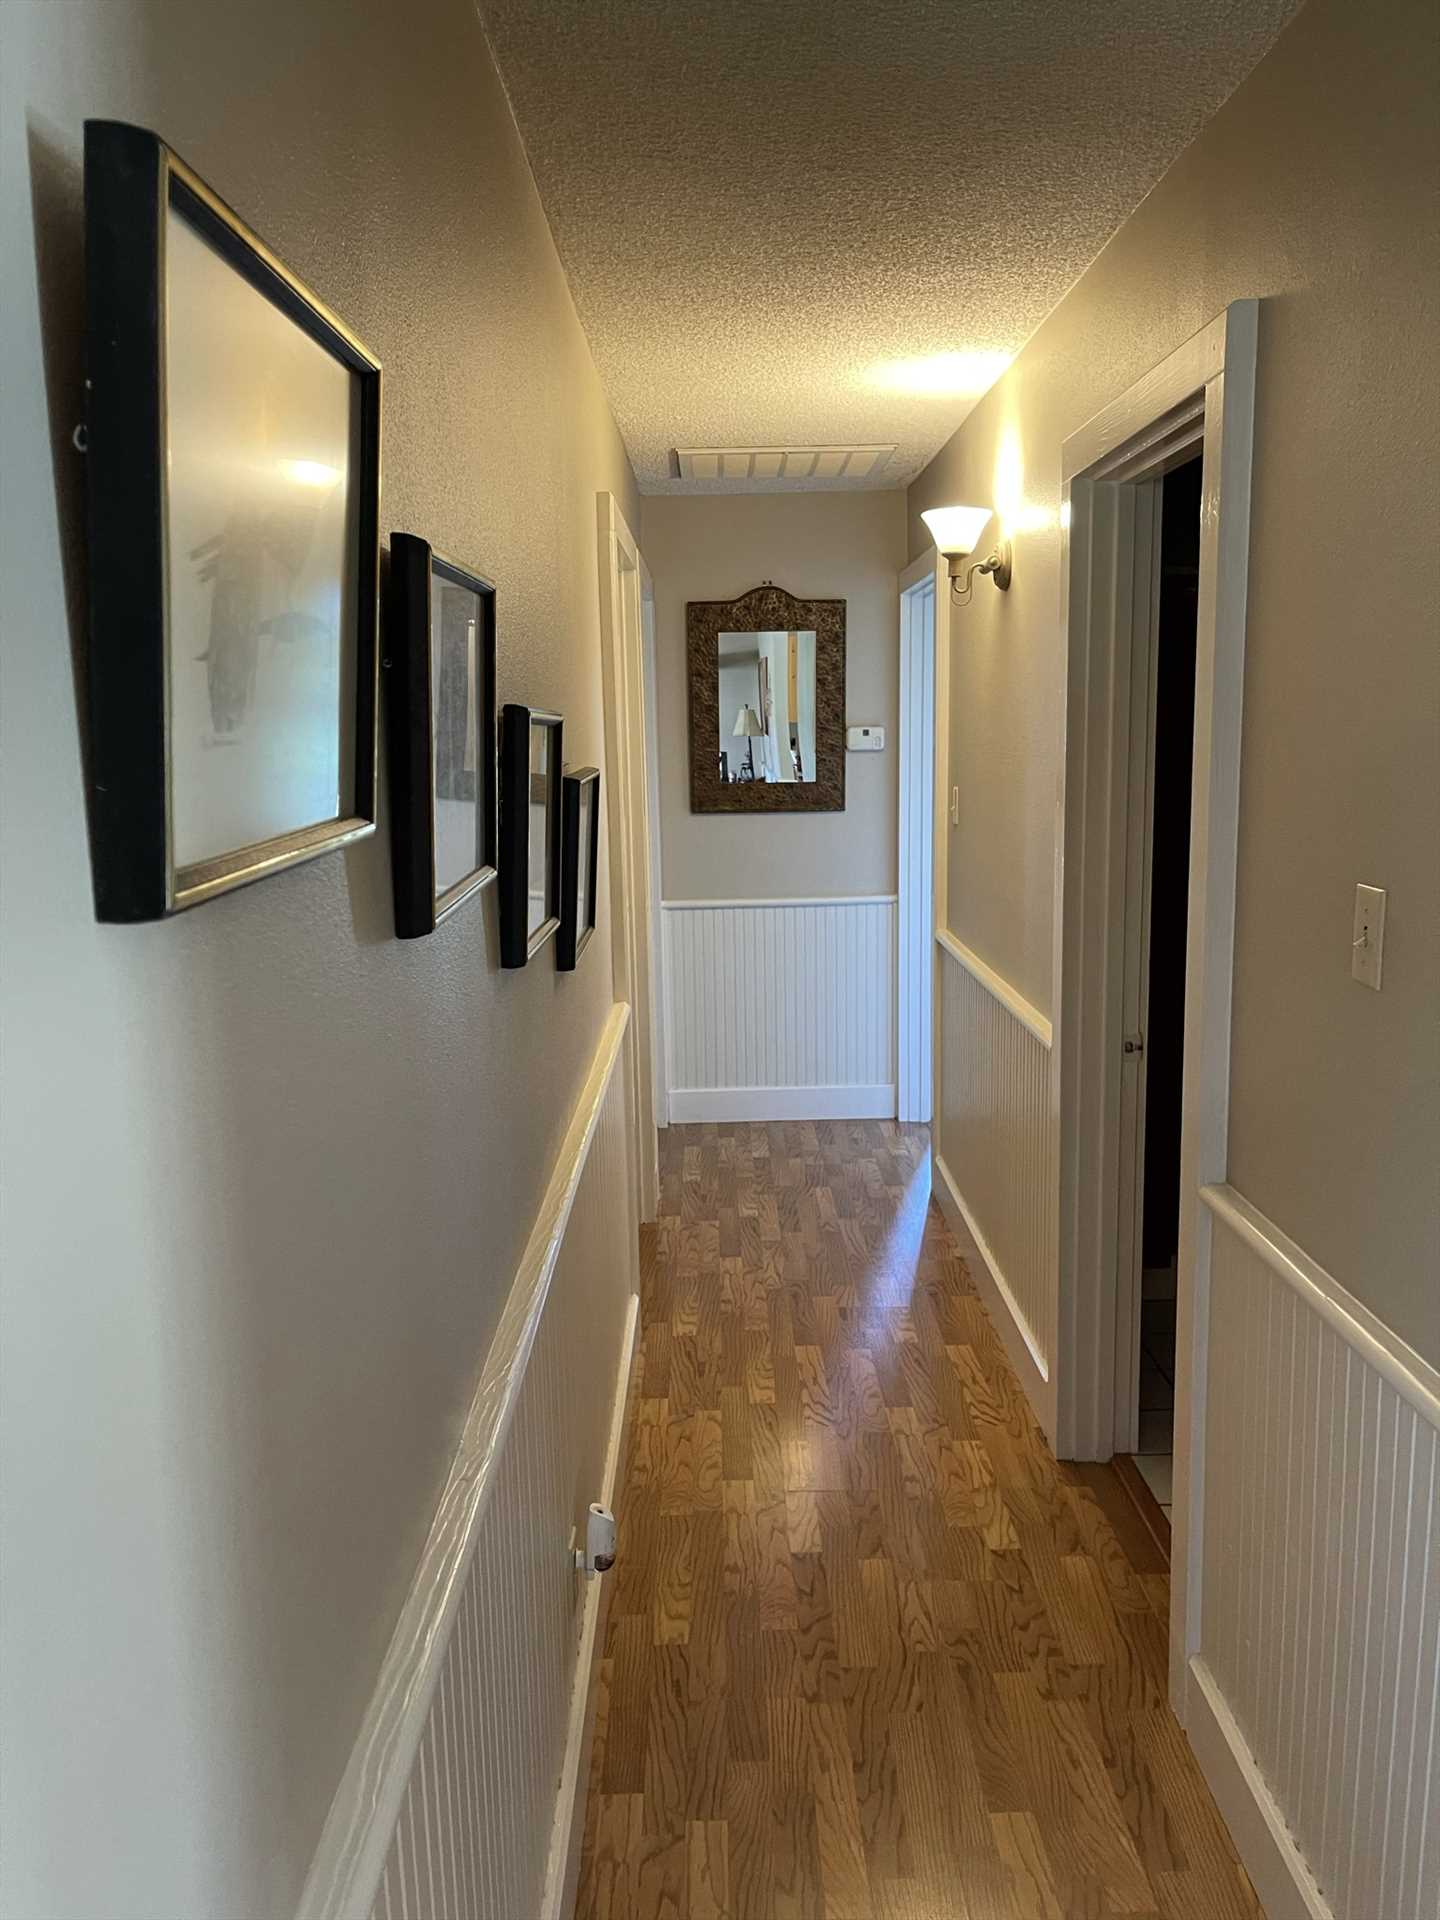 With a hallway separating the main space from the bedrooms, those seeking some private time will be able to without any inconvenience.